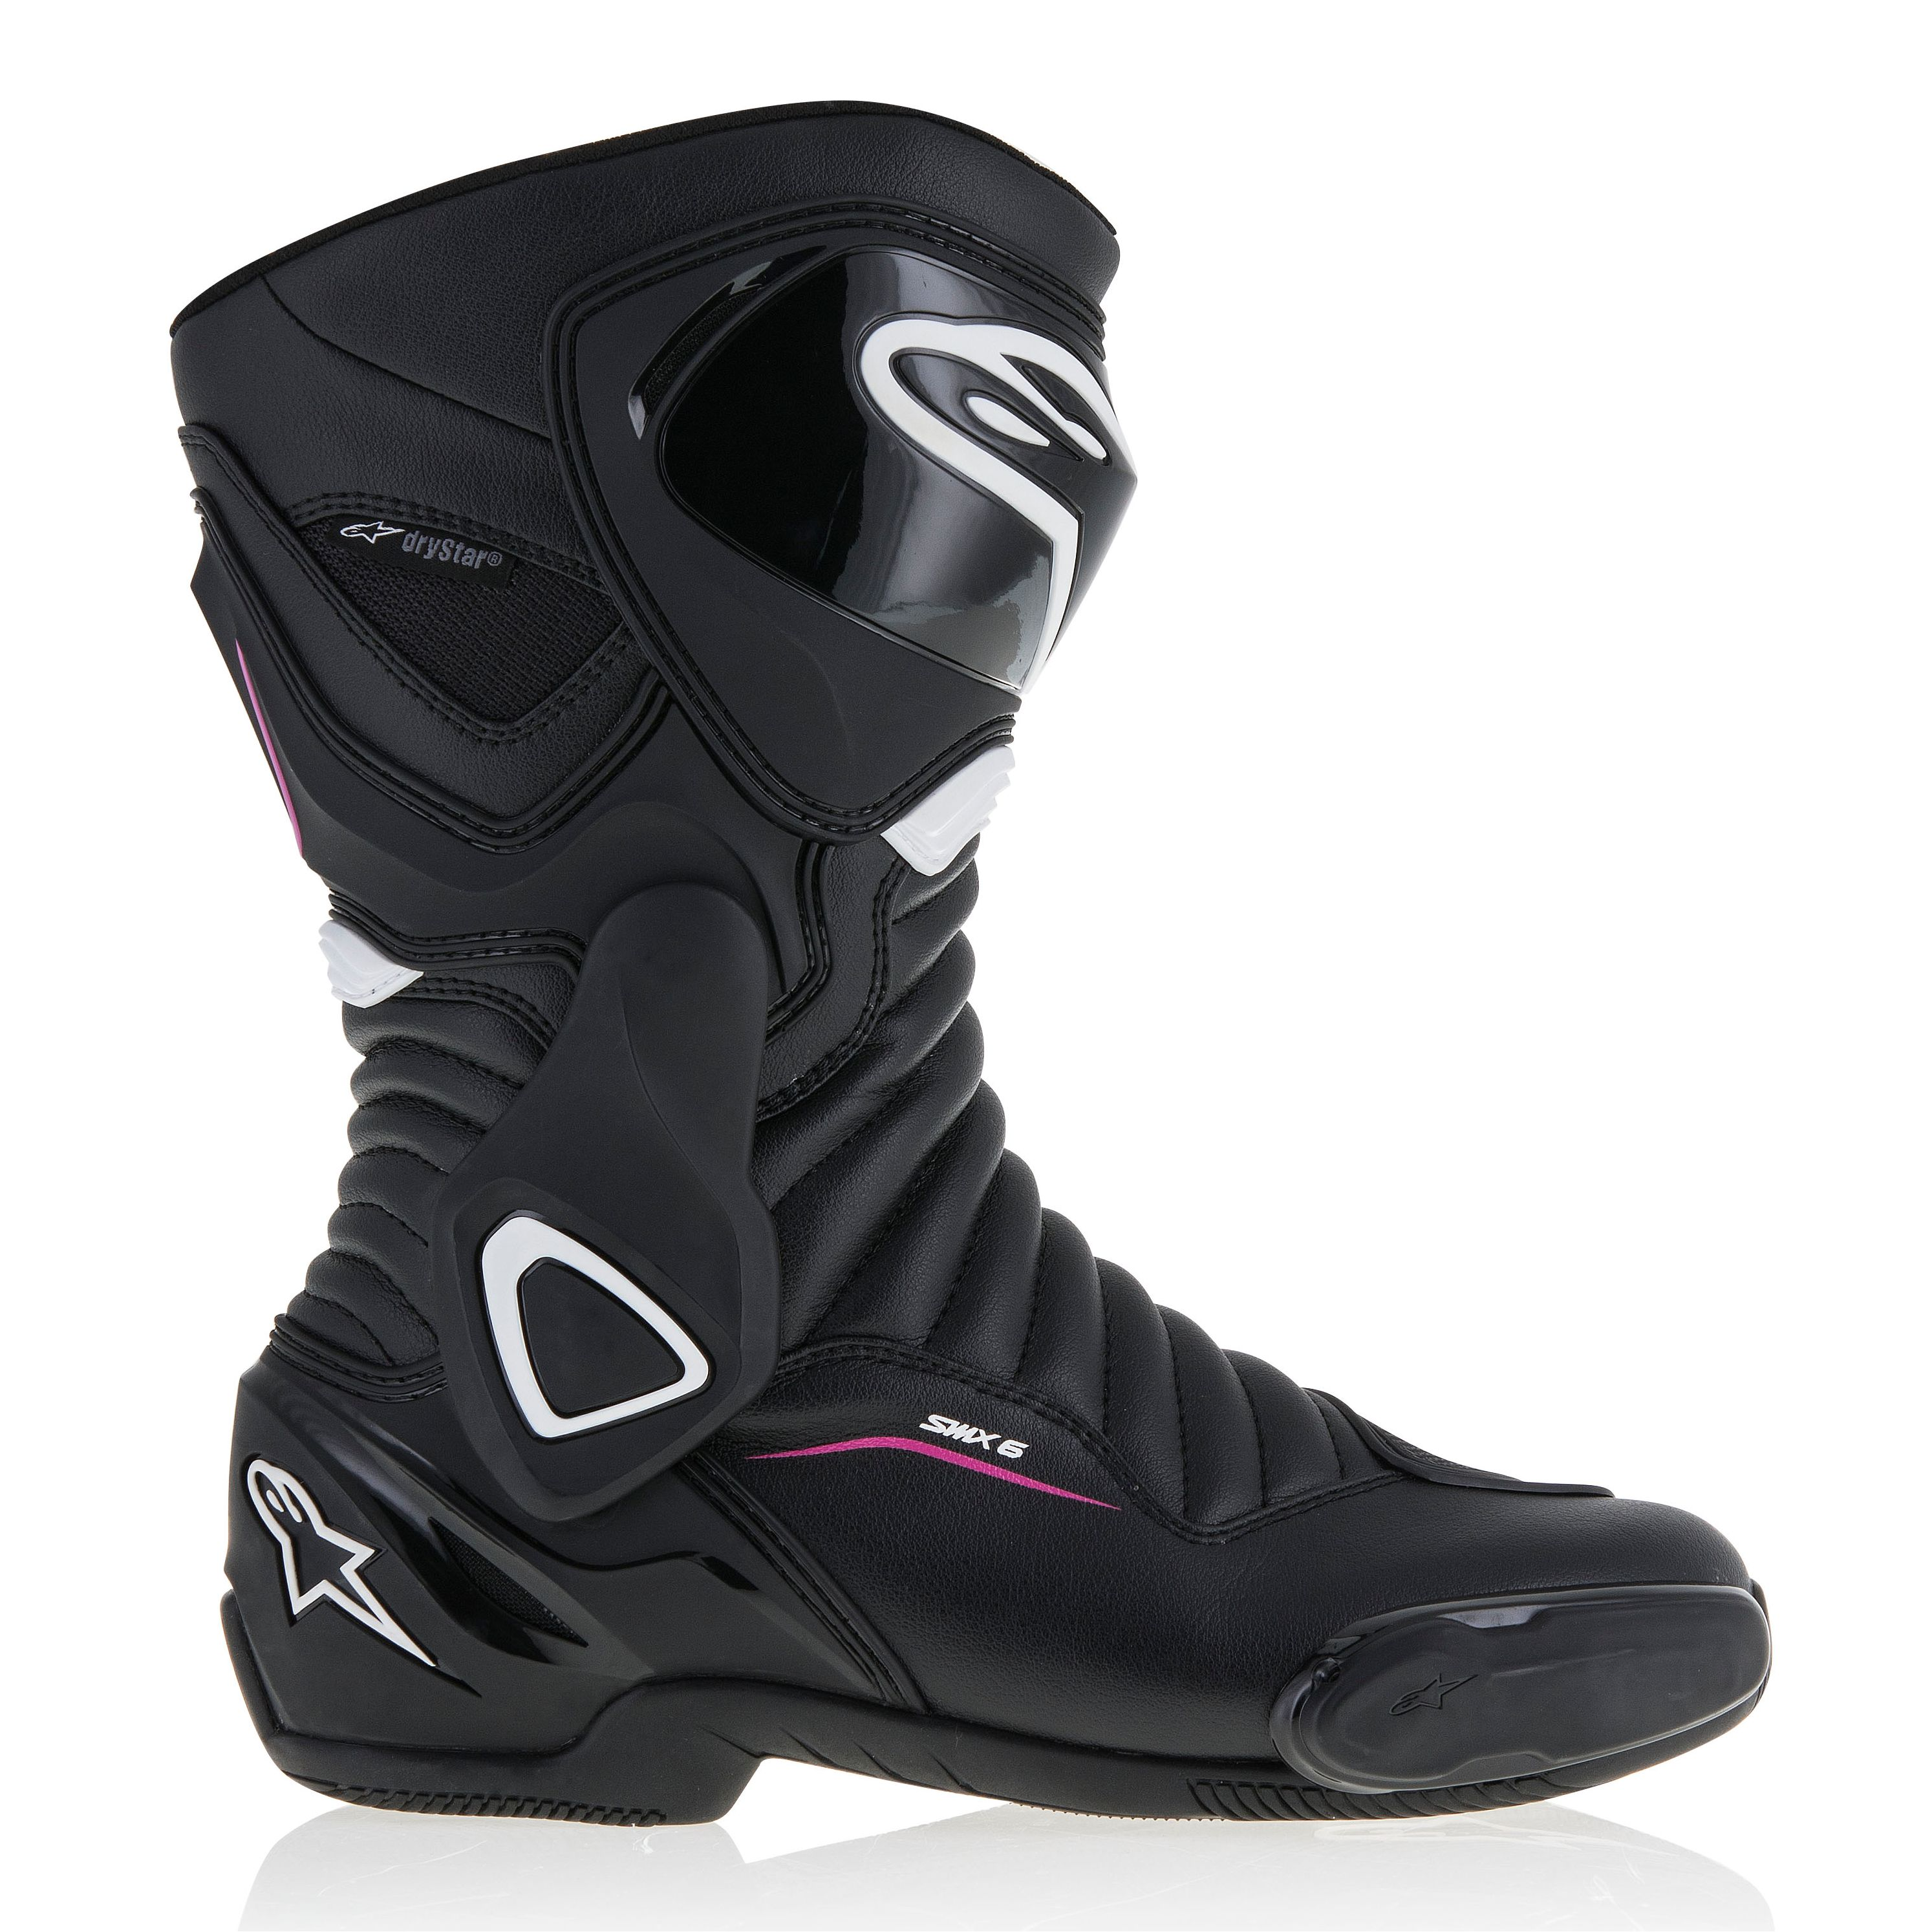 bottes alpinestars stella smx 6 v2 drystar bottes et chaussures. Black Bedroom Furniture Sets. Home Design Ideas